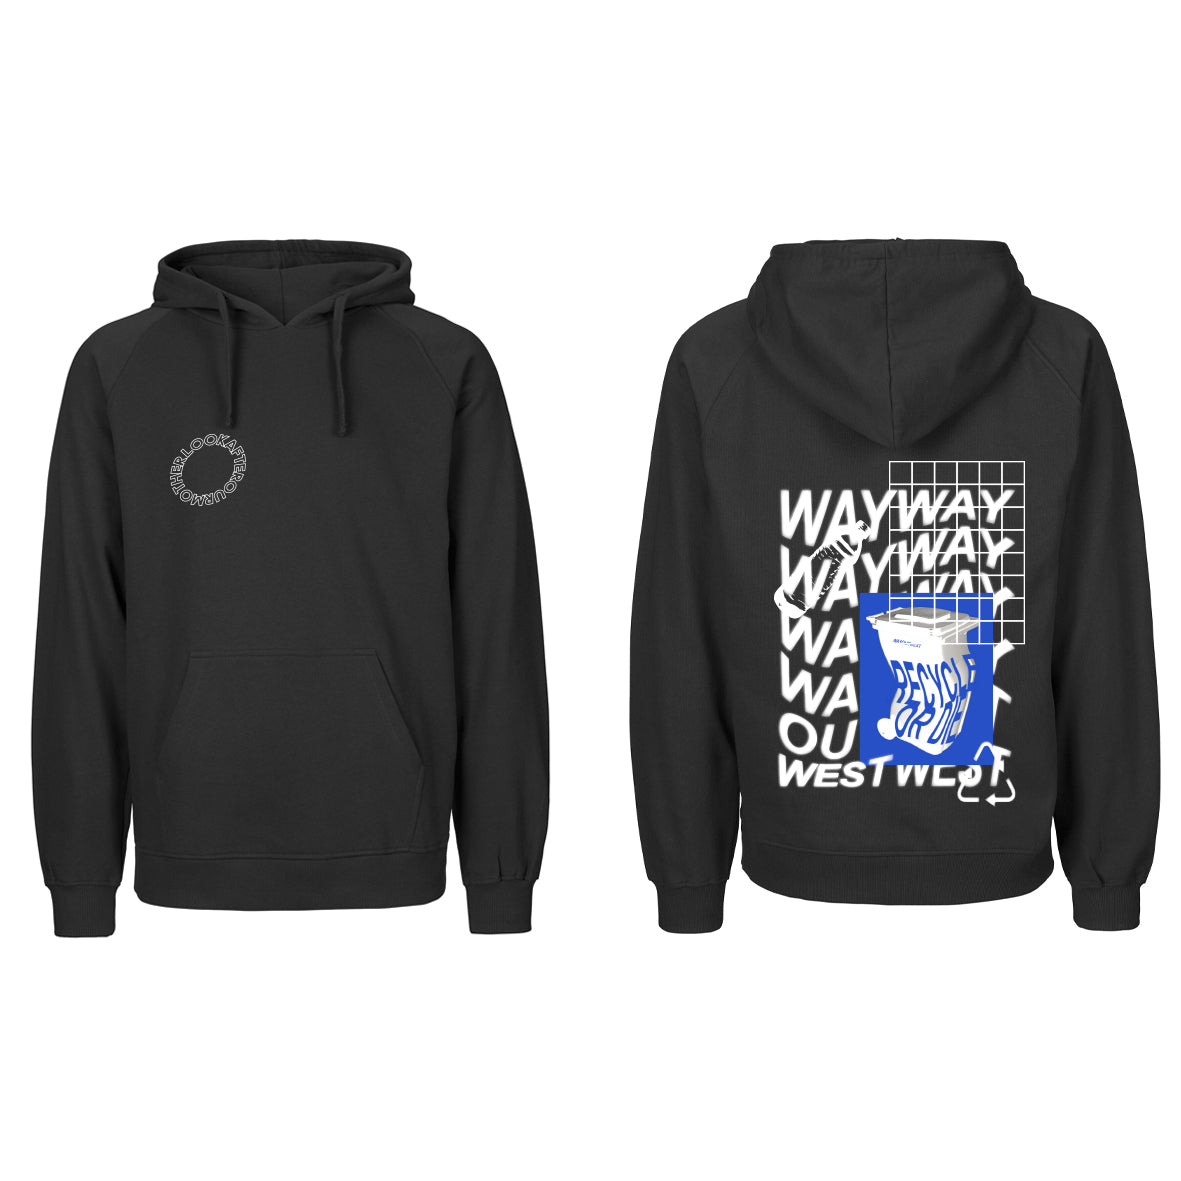 RECYCLE OR DIE HOODED SWEATER / BLACK